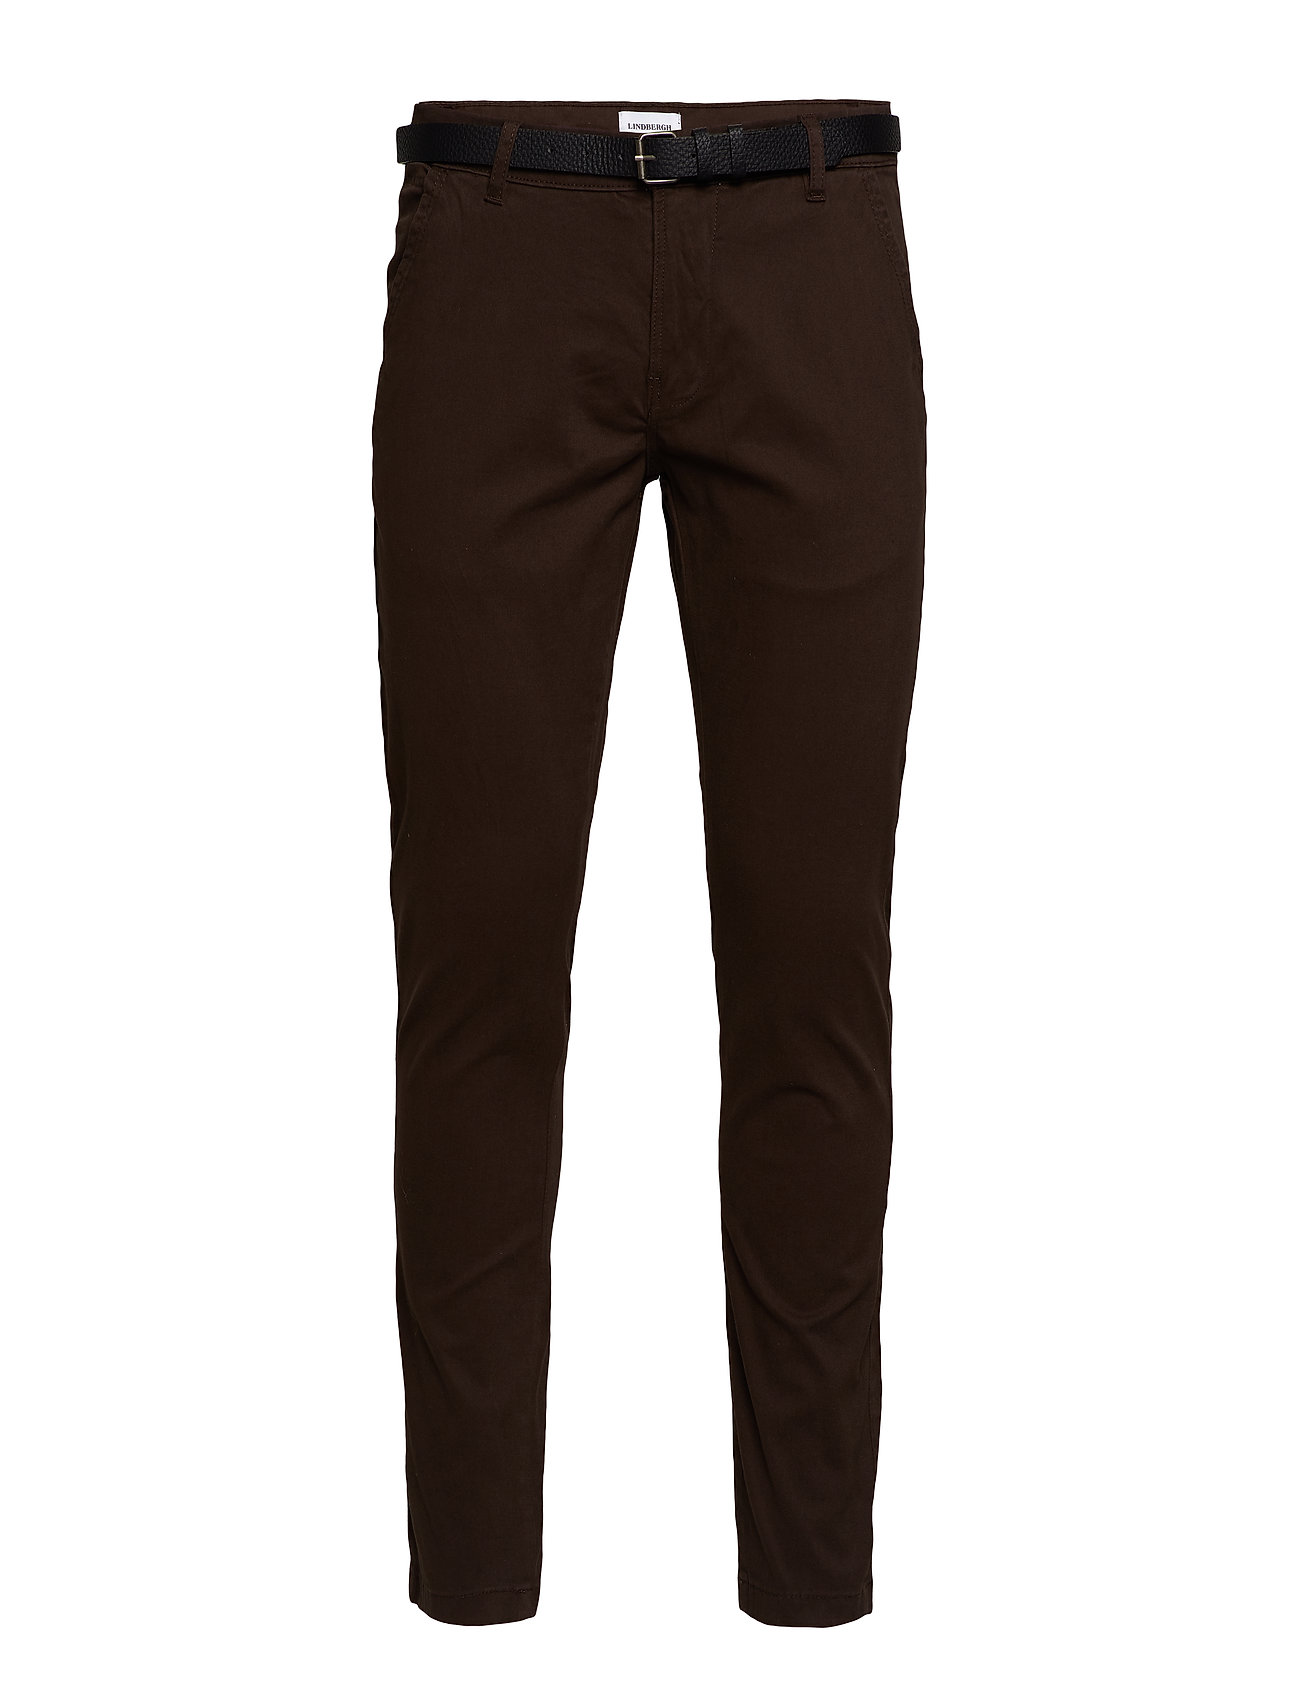 Lindbergh Classic stretch chino W. belt - DK BROWN